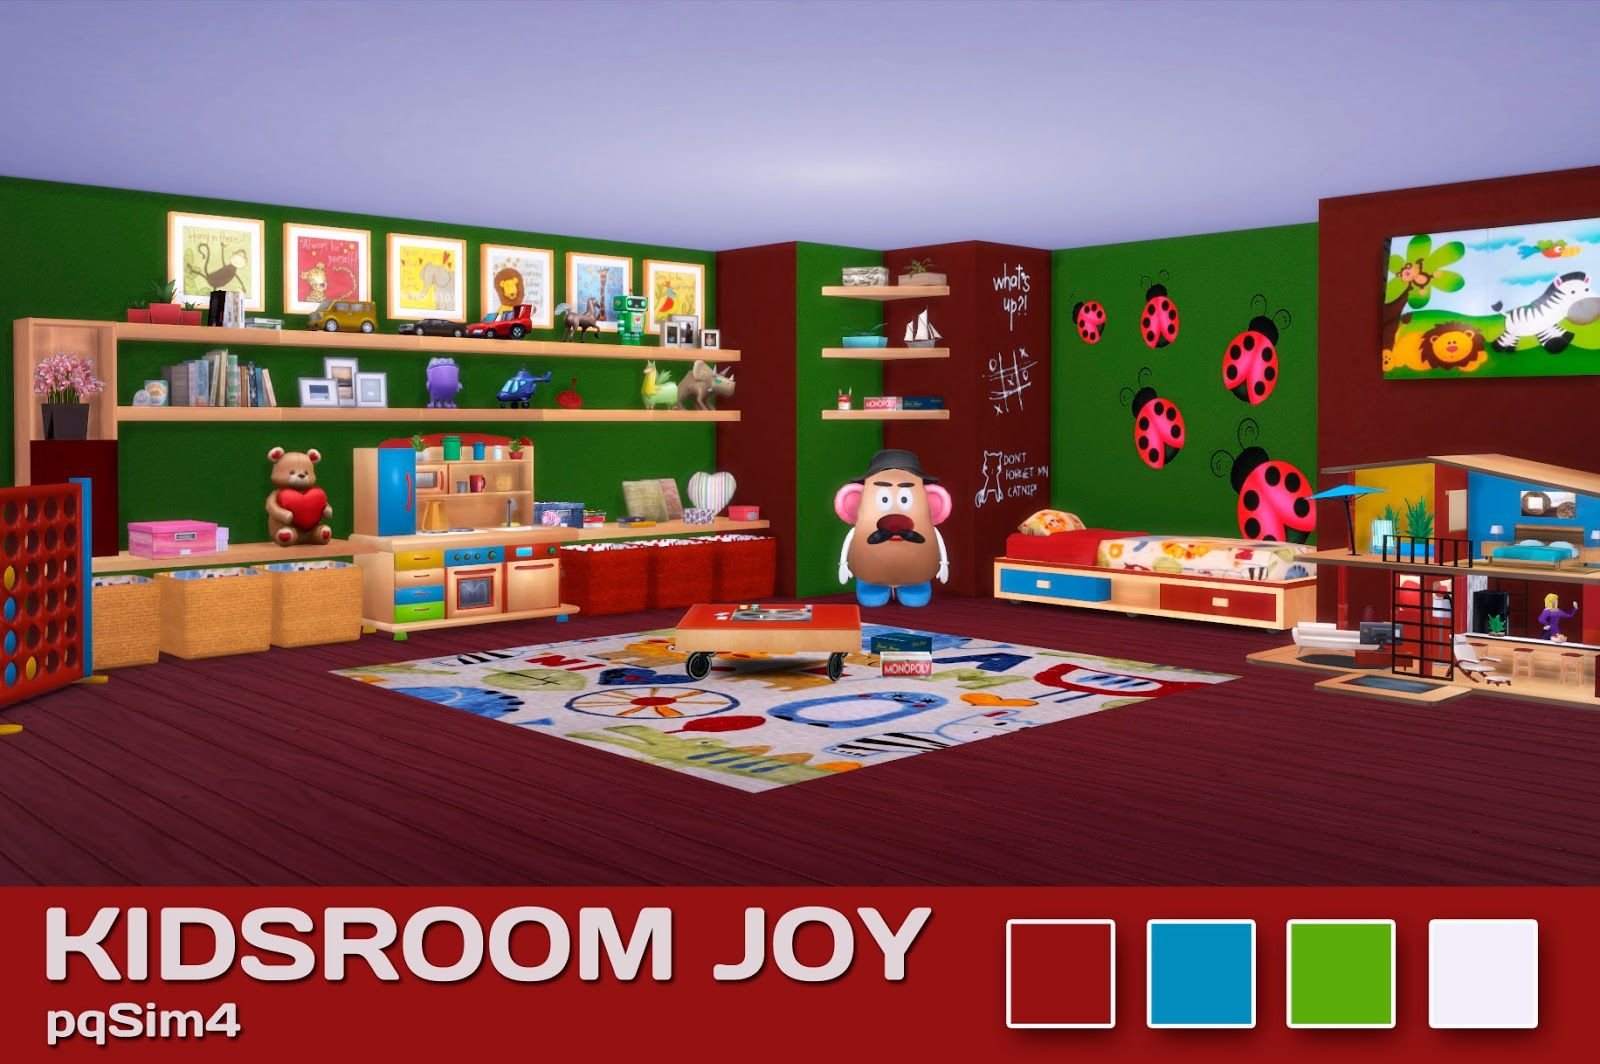 Muebles Sims 4 Sims 4 Kids Room Joy Pqsim4 Cc Sims4 En 2018